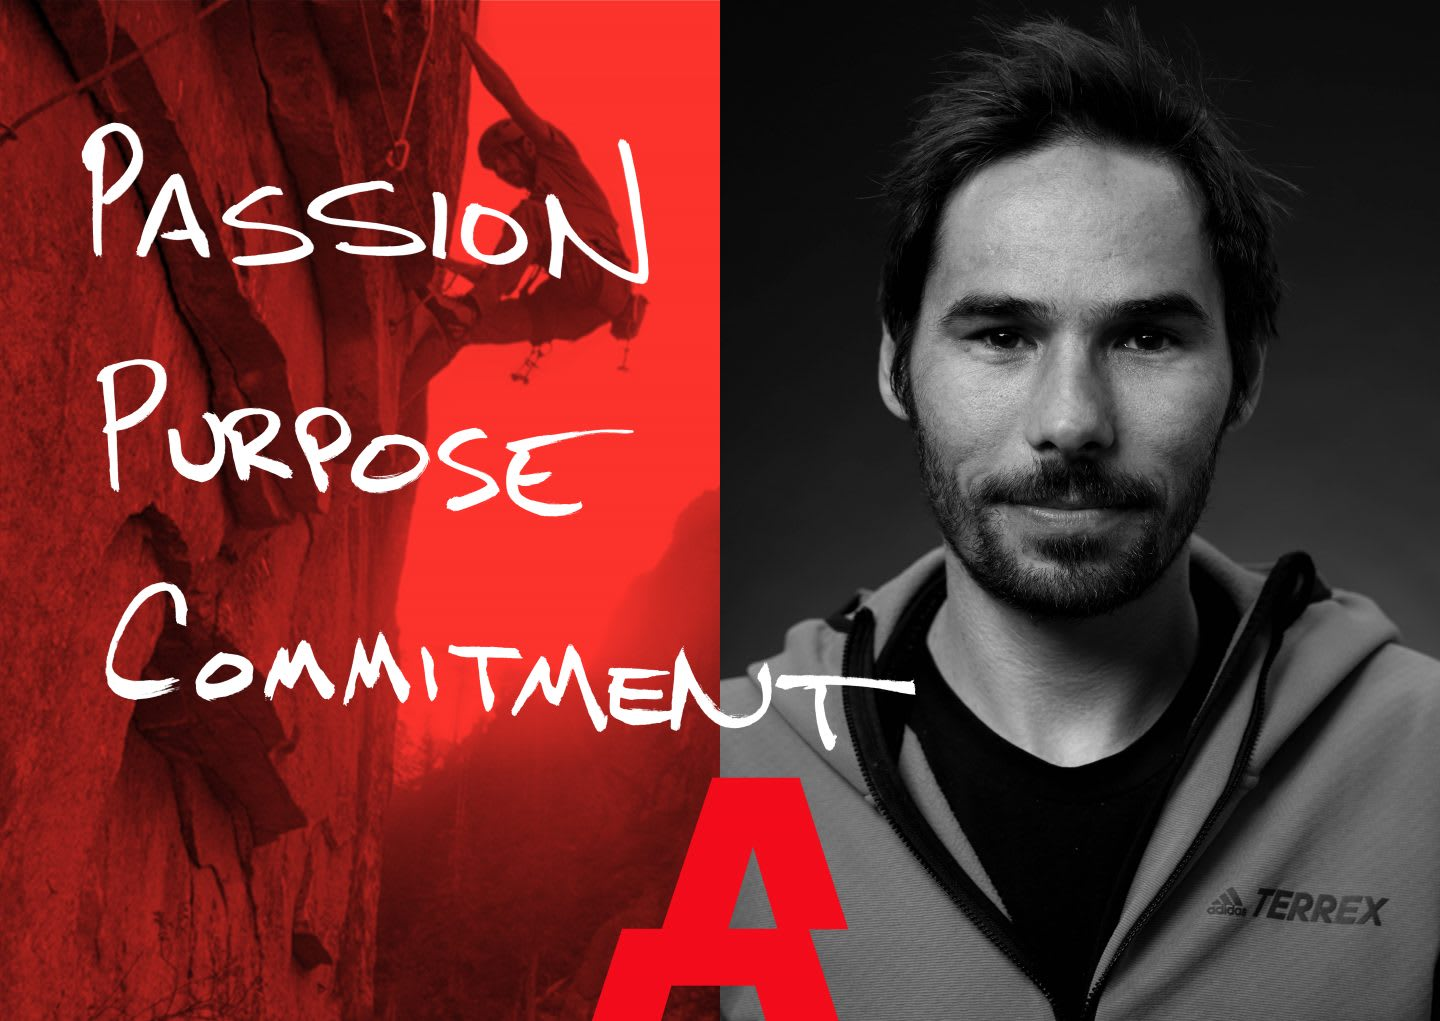 The image shows a head shot from Kevin Jorgeson and his three words: Passion-Purpose-Commitment. Kevin Jorgeson, athlete mindset, achieving success. boost confidence, challenges, finding purpose.